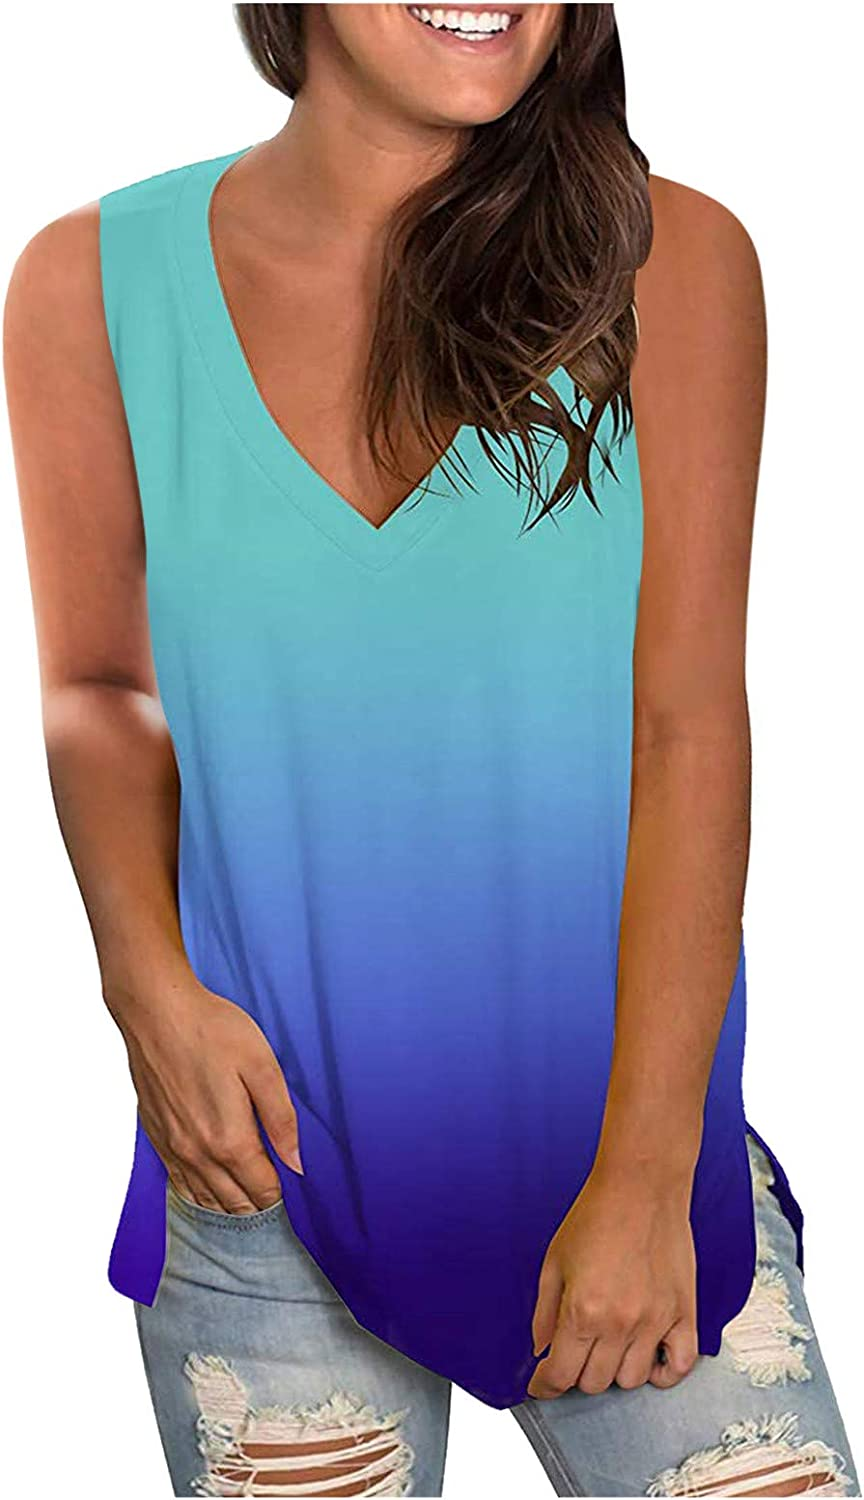 Tank Tops for Women, Womens Summer Tops Floral Print V Neck Sleeveless T-Shirts Casual Blouse Plus Size Tunics